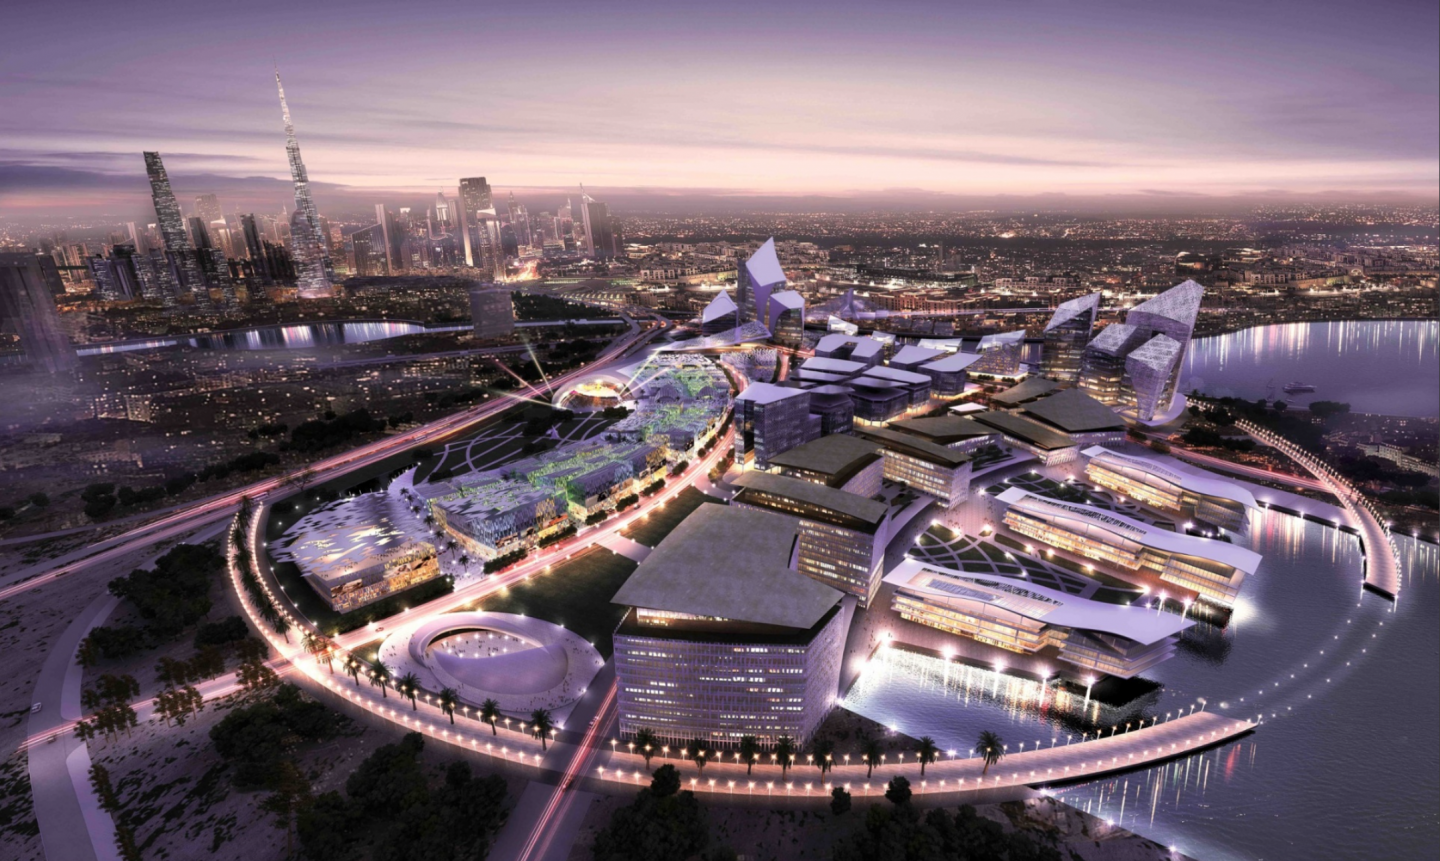 Artist rendering of the Dubai Design District